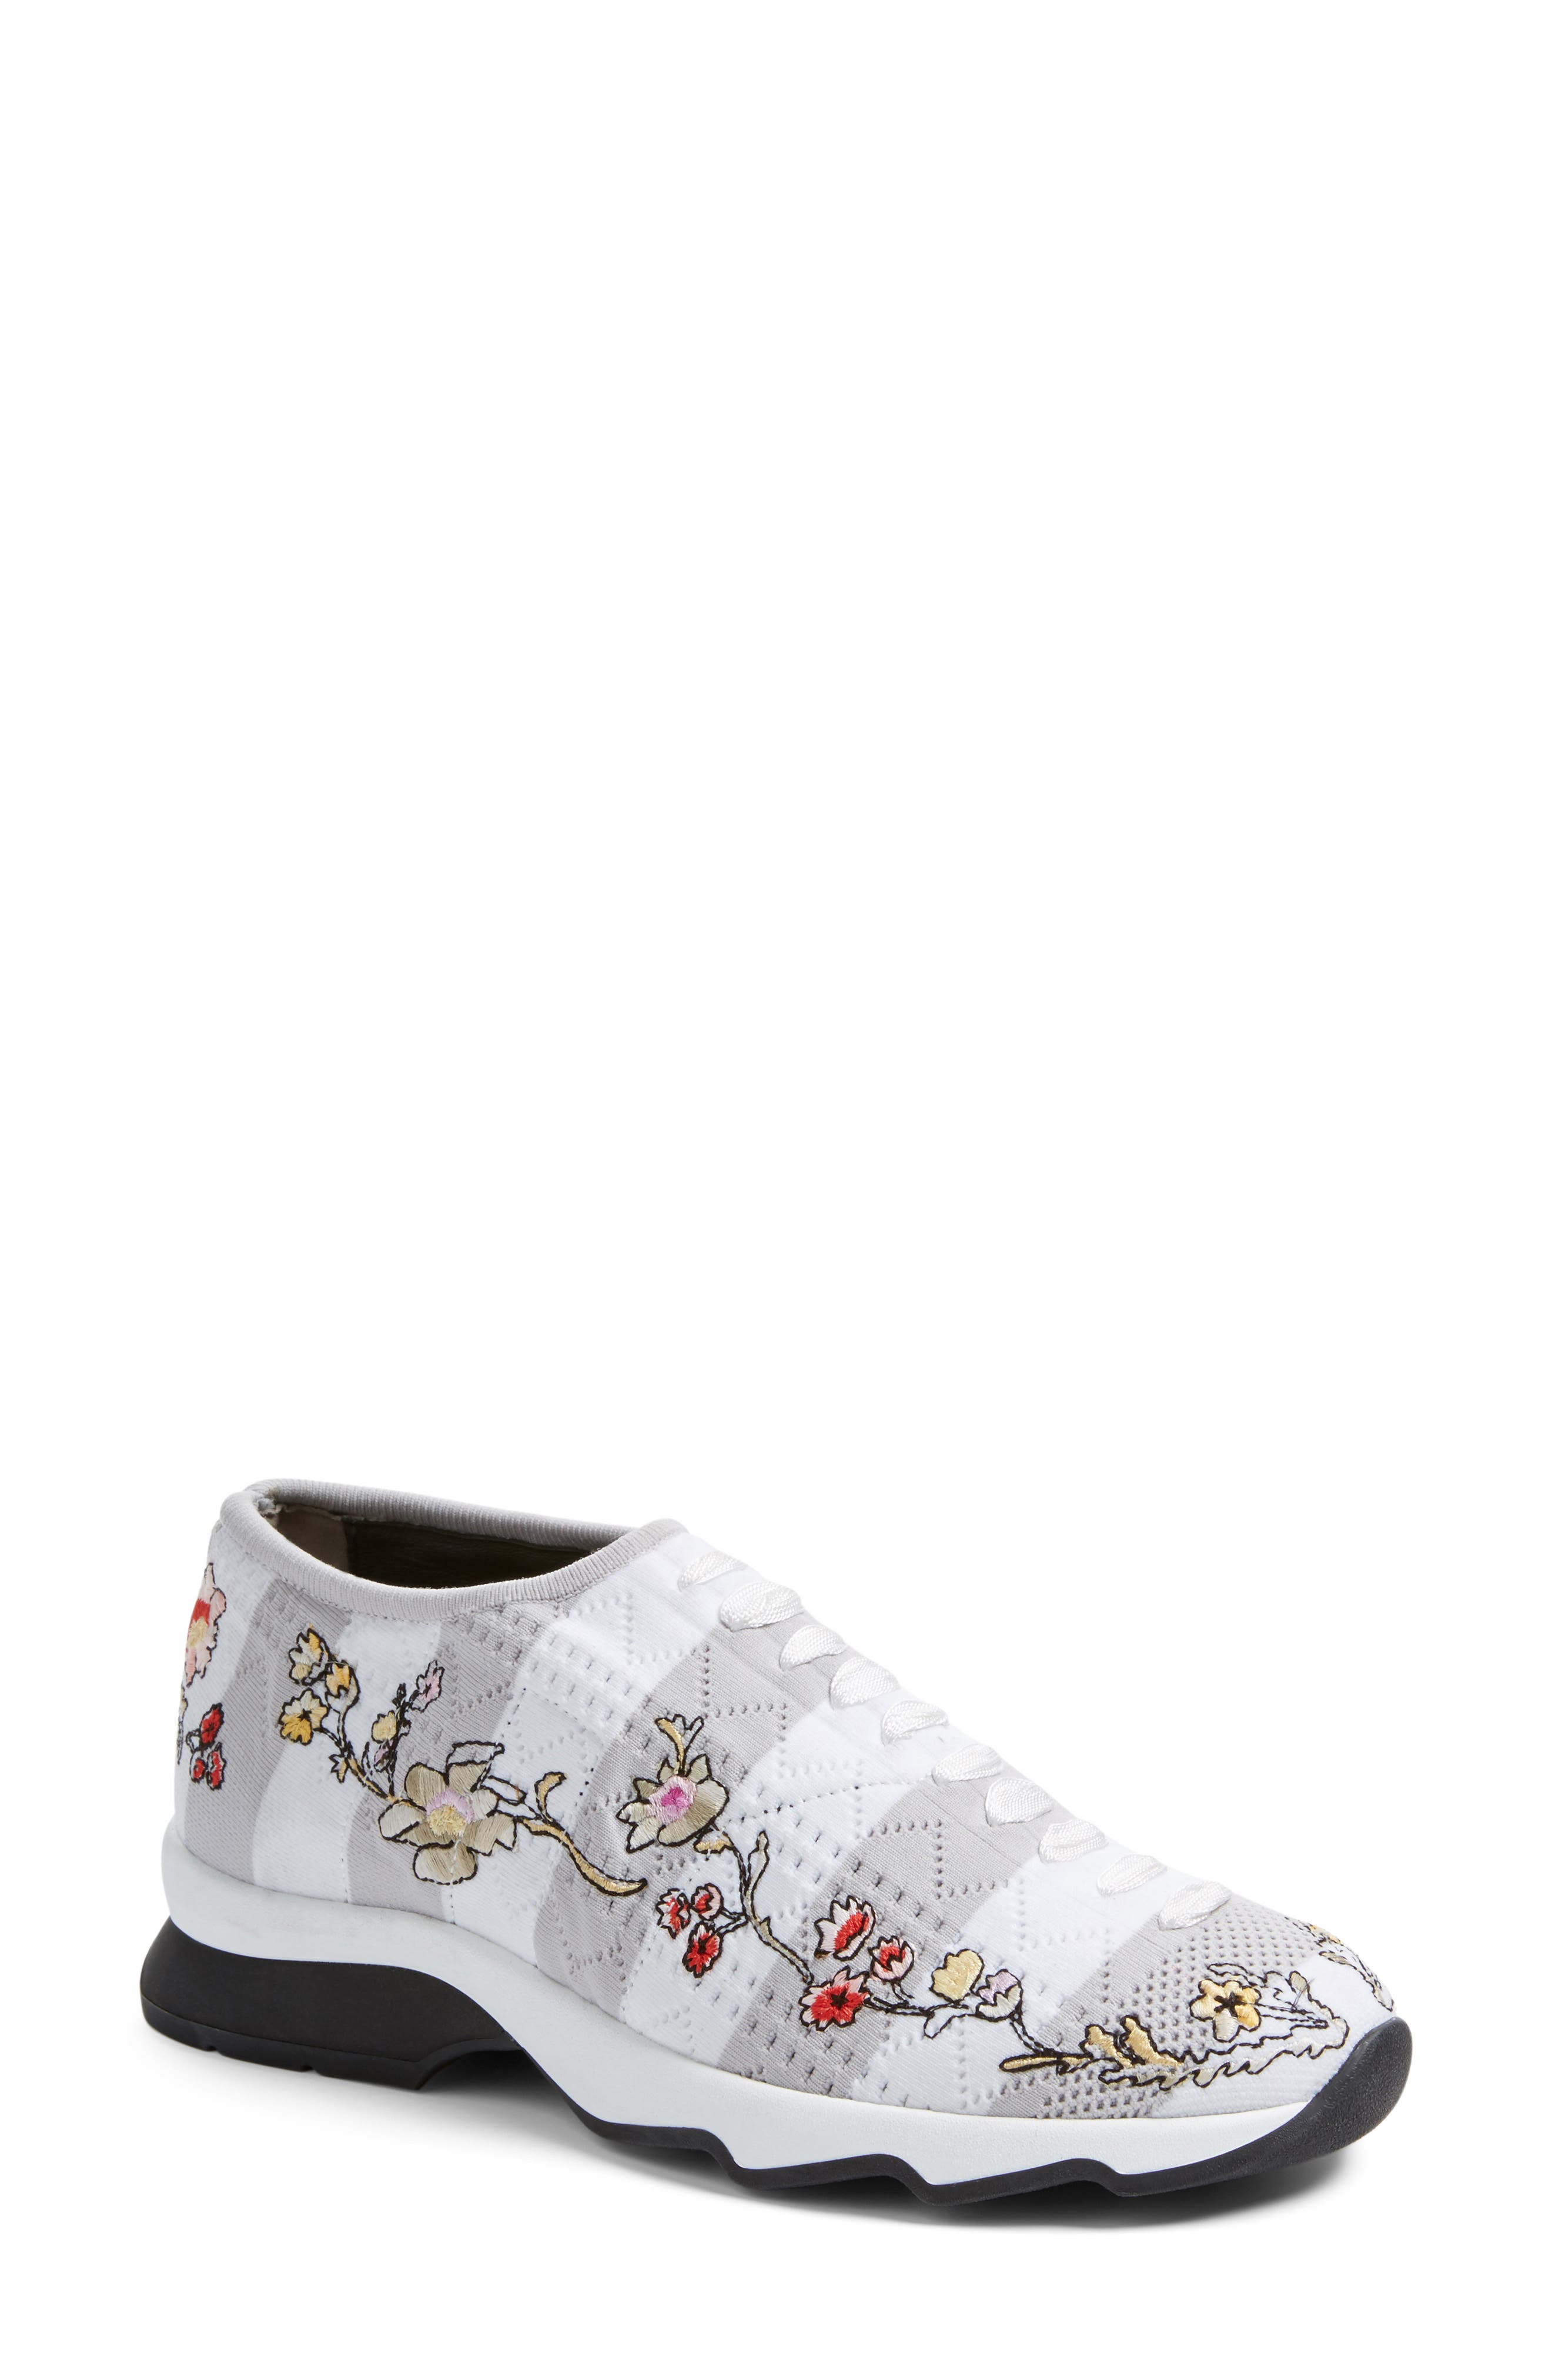 Alternate Image 1 Selected - Fendi Marie Antoinette Sneaker (Women)